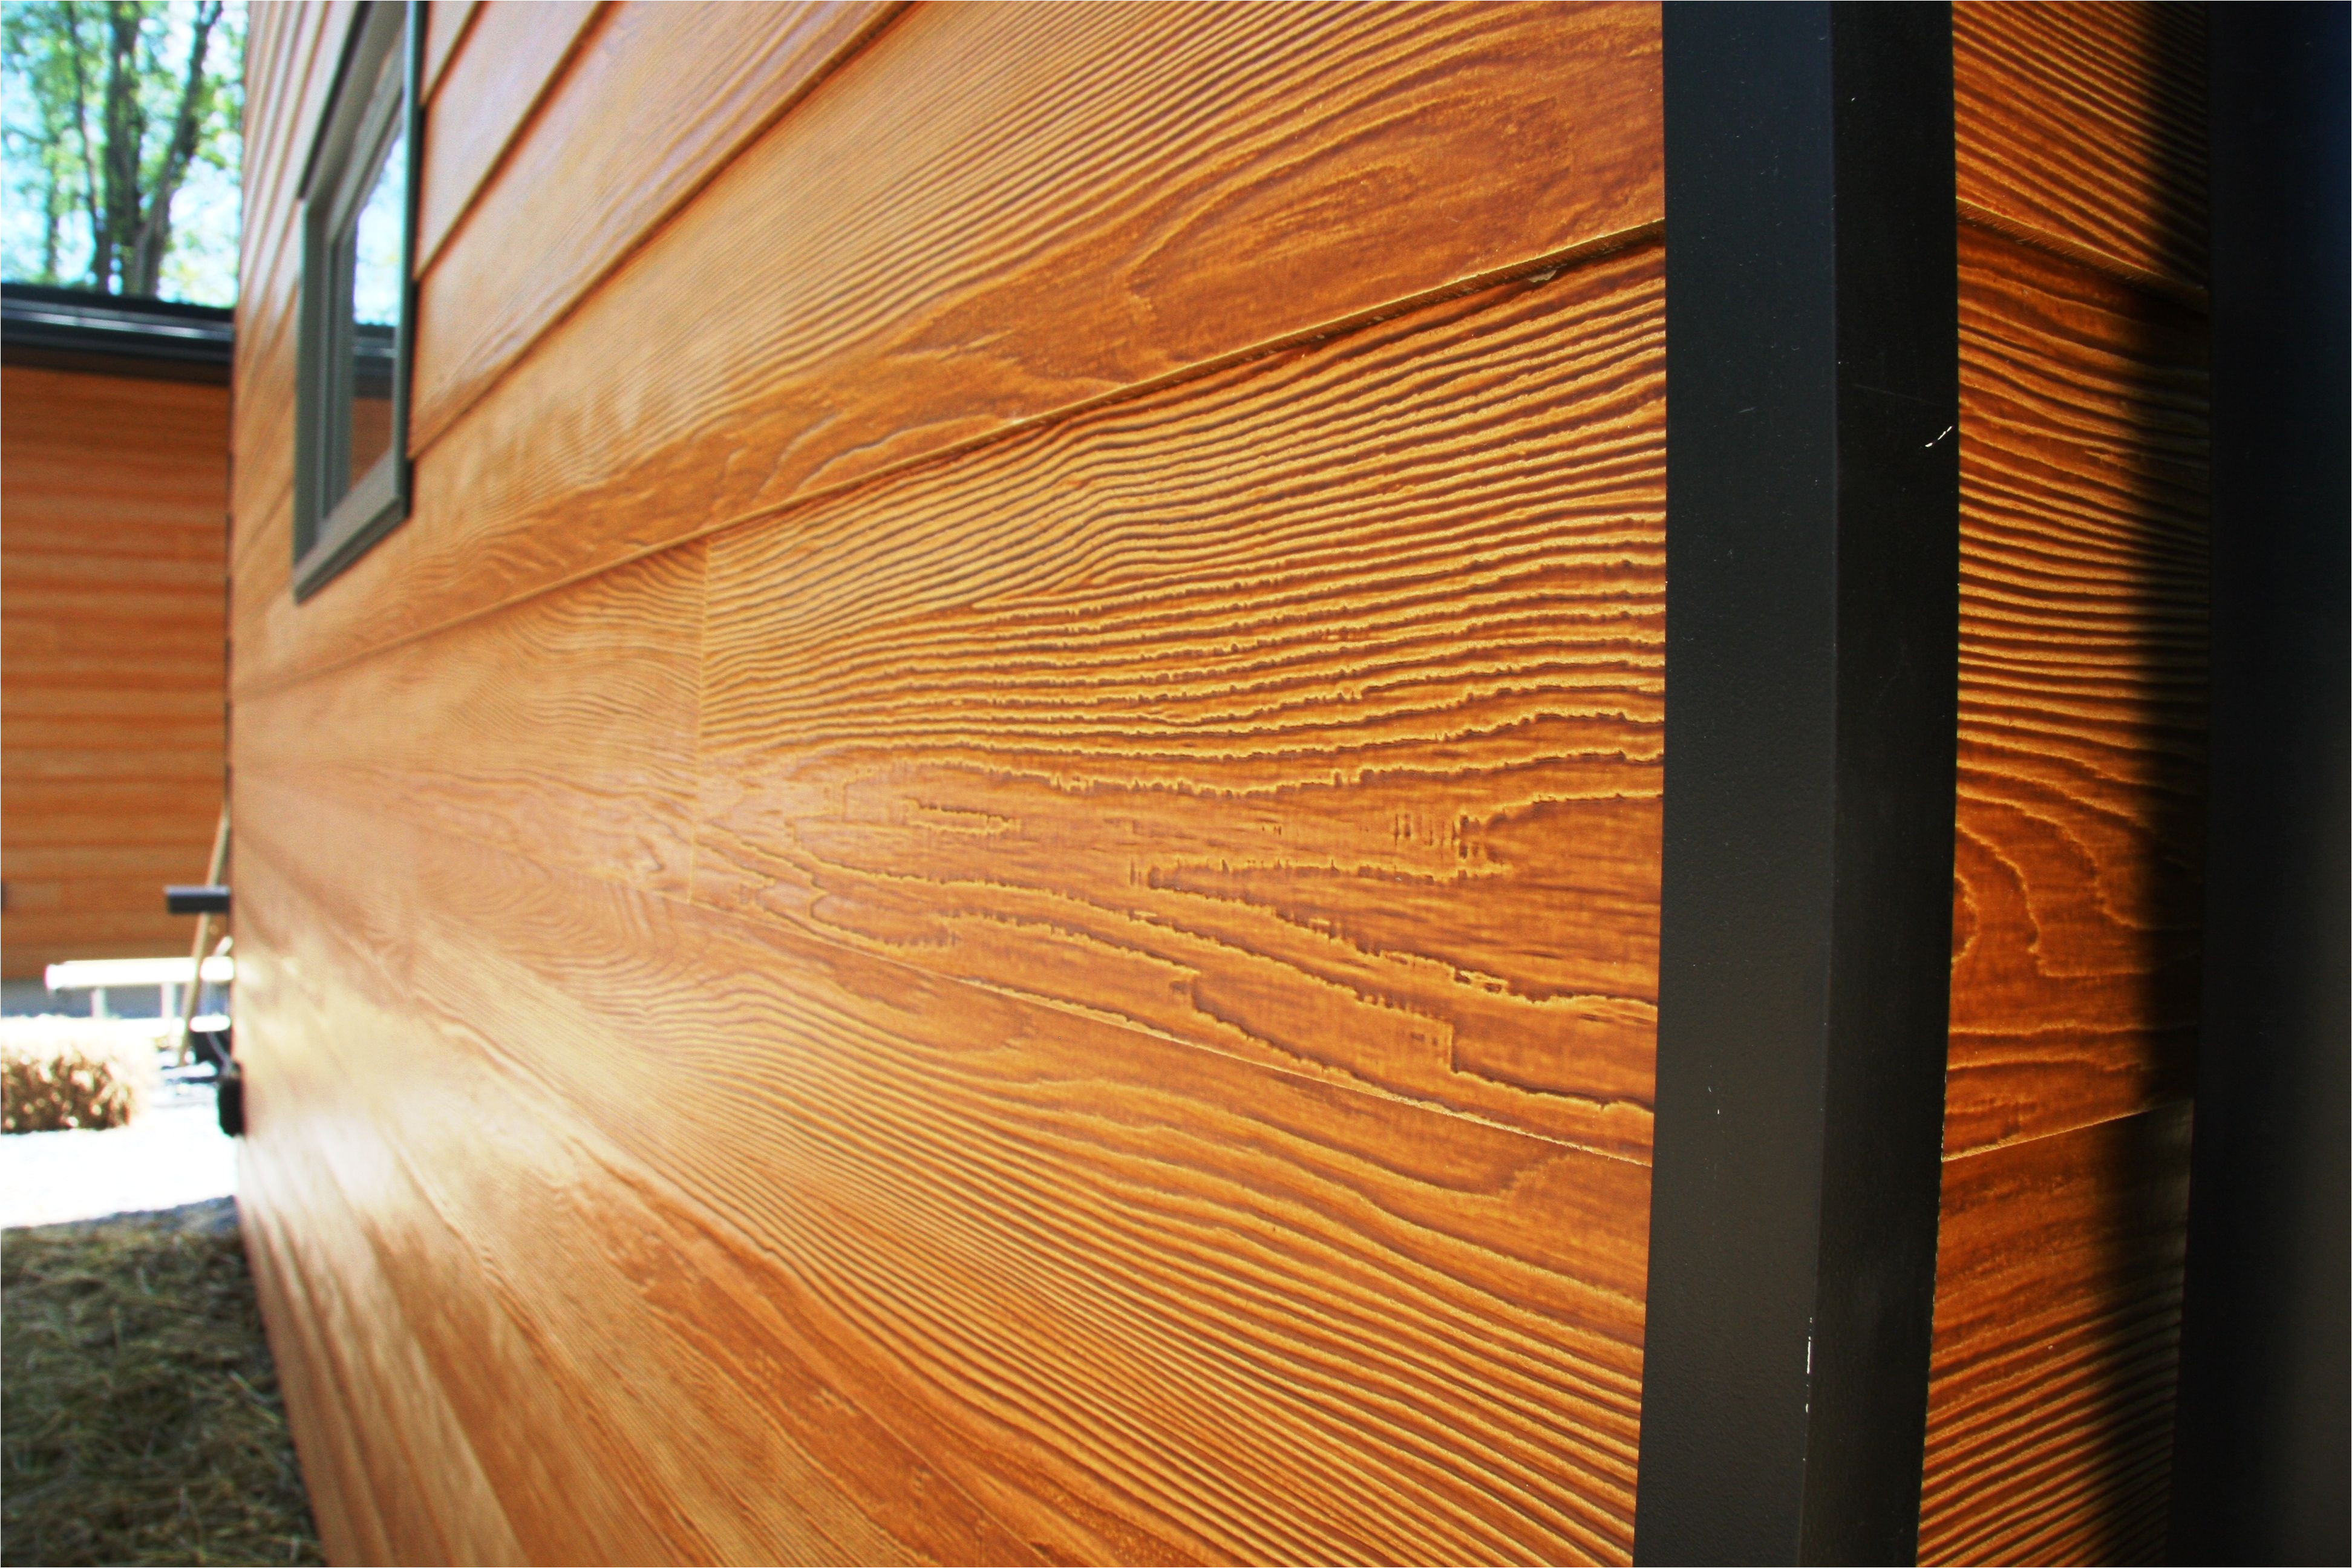 certainteed fiber cement siding closeup view cedar or maple stain source doesn t list finish